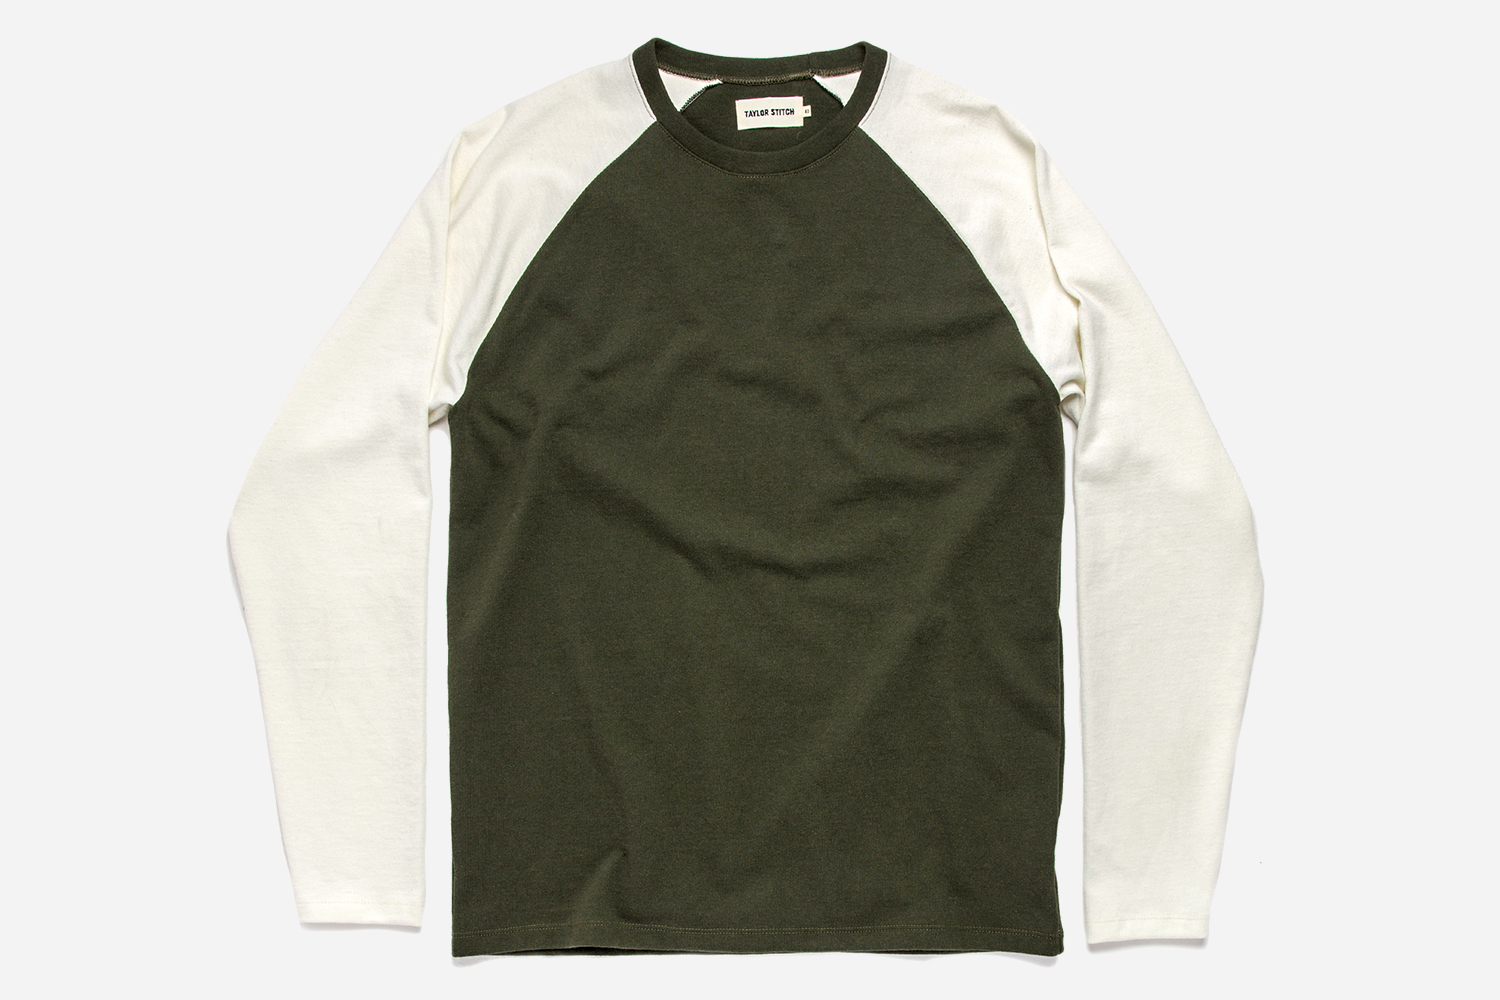 The Taylor Stitch Heavy Bag LS Tee on Sale at Huckberry